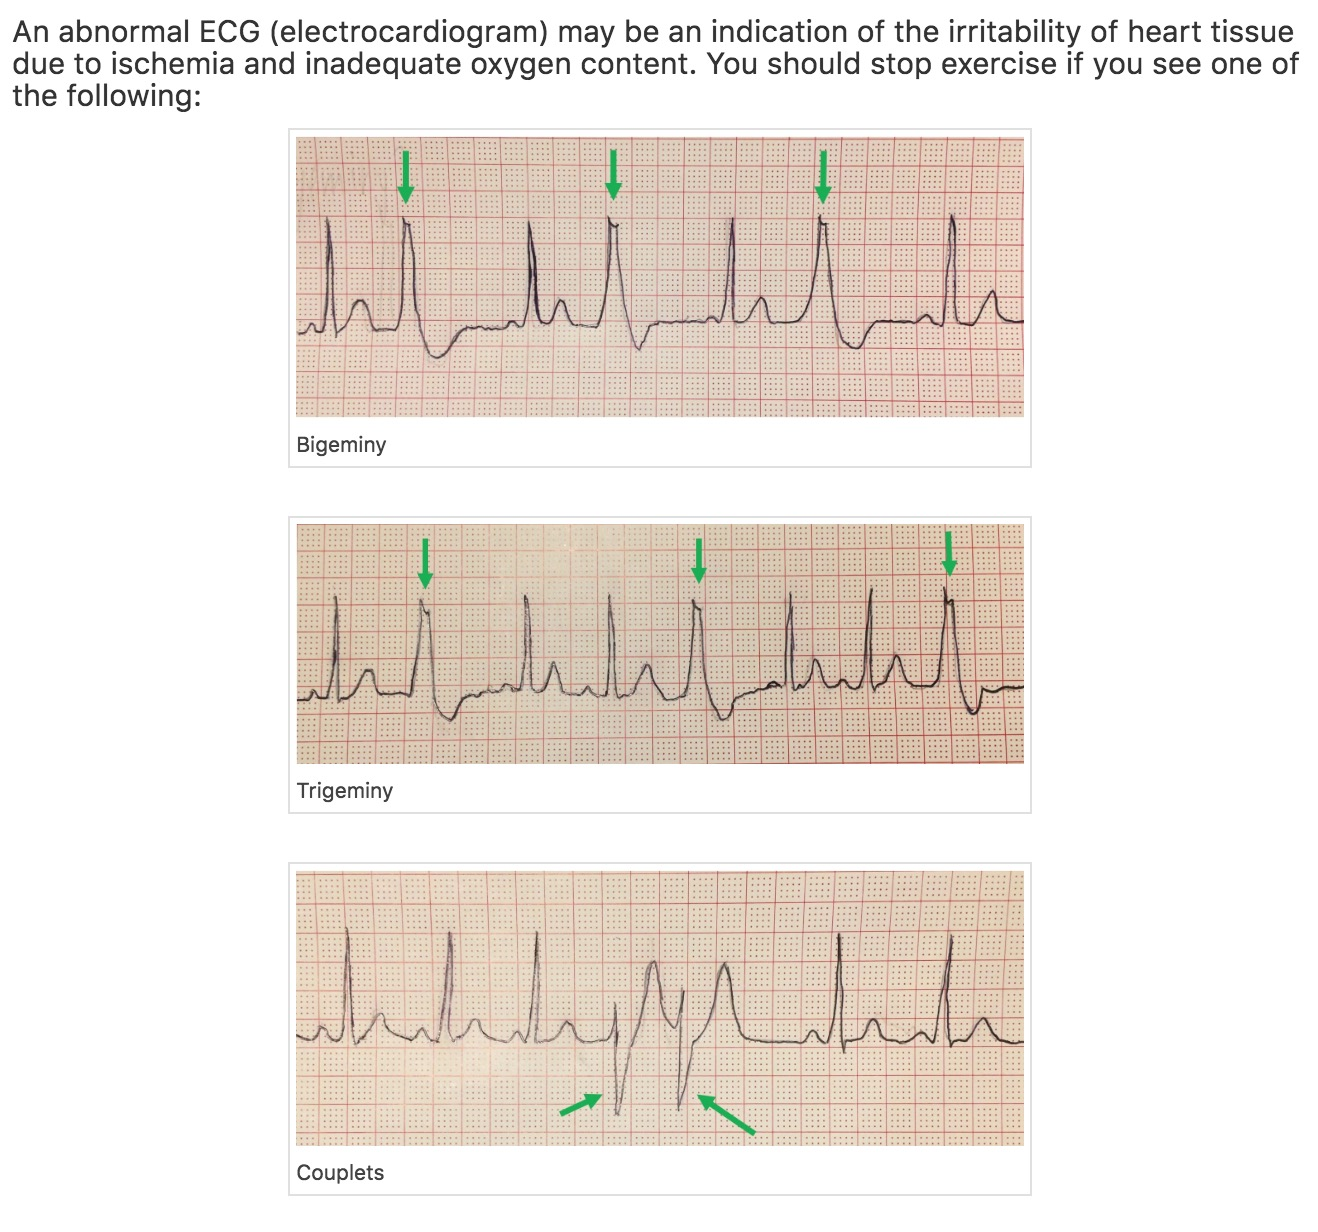 Recognize key ECG patterns for stopping exercise